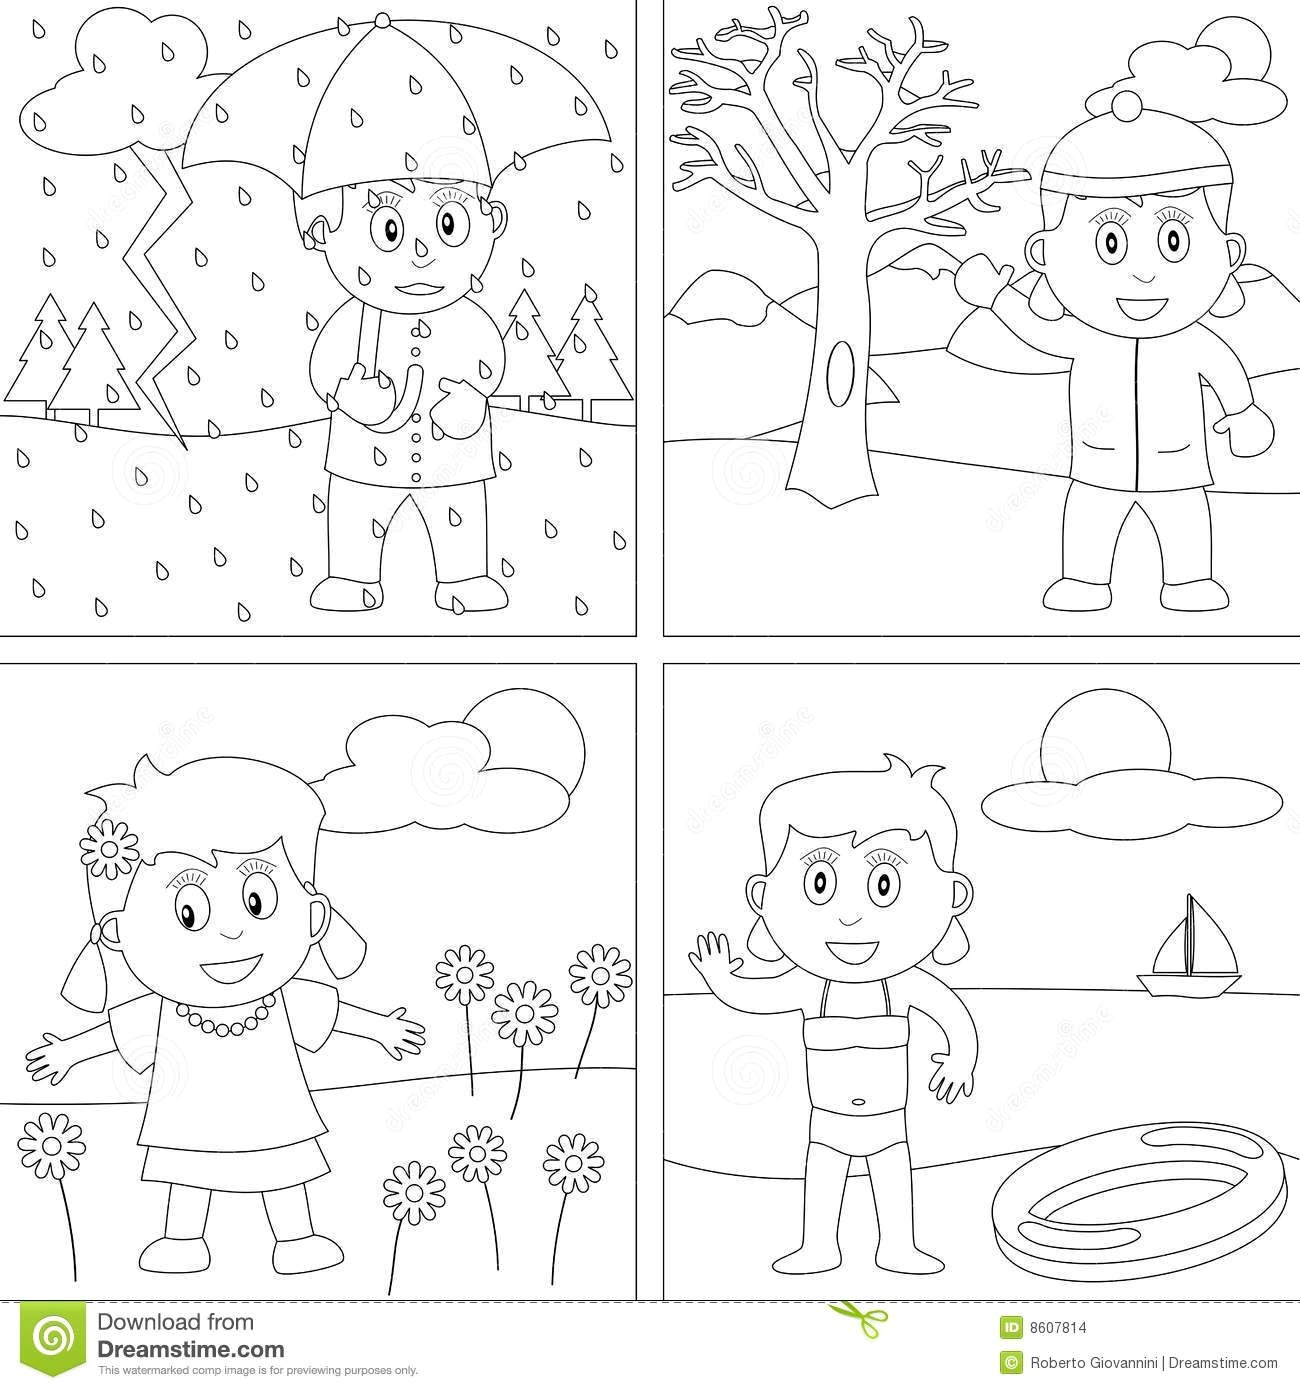 Seasons Coloring Pages Four Seasons Coloring Page Printable Wwwilleurimage